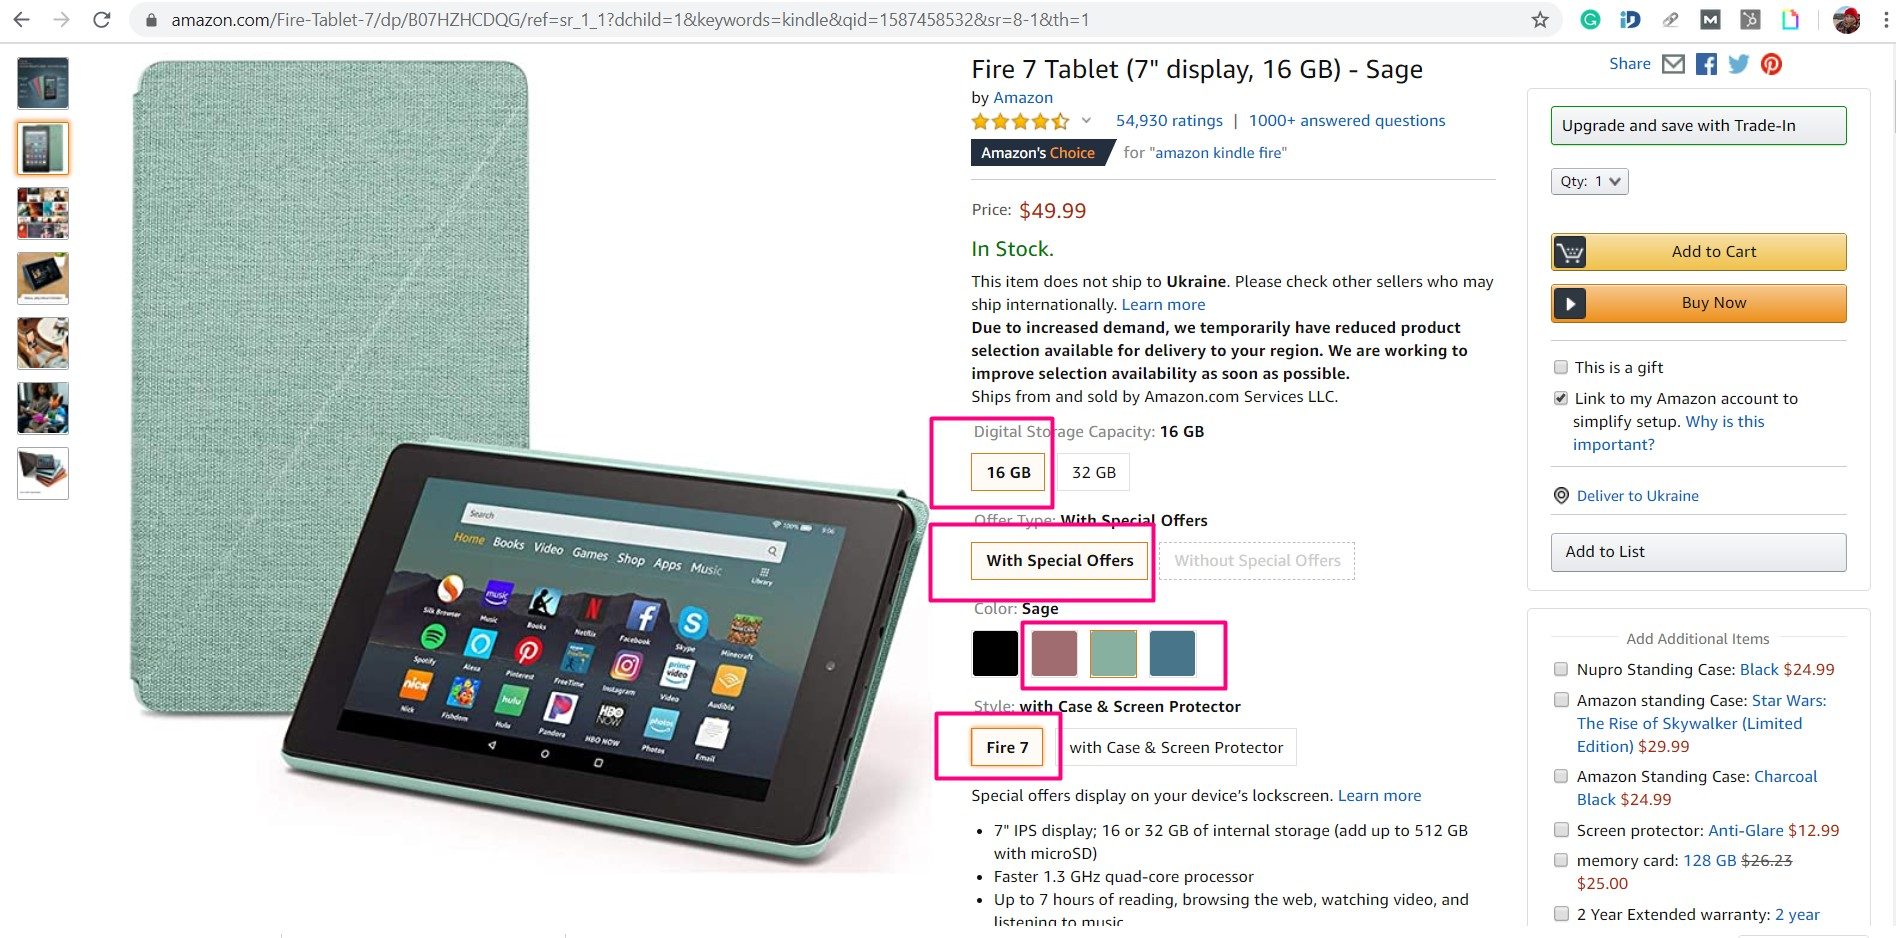 amazon asin number